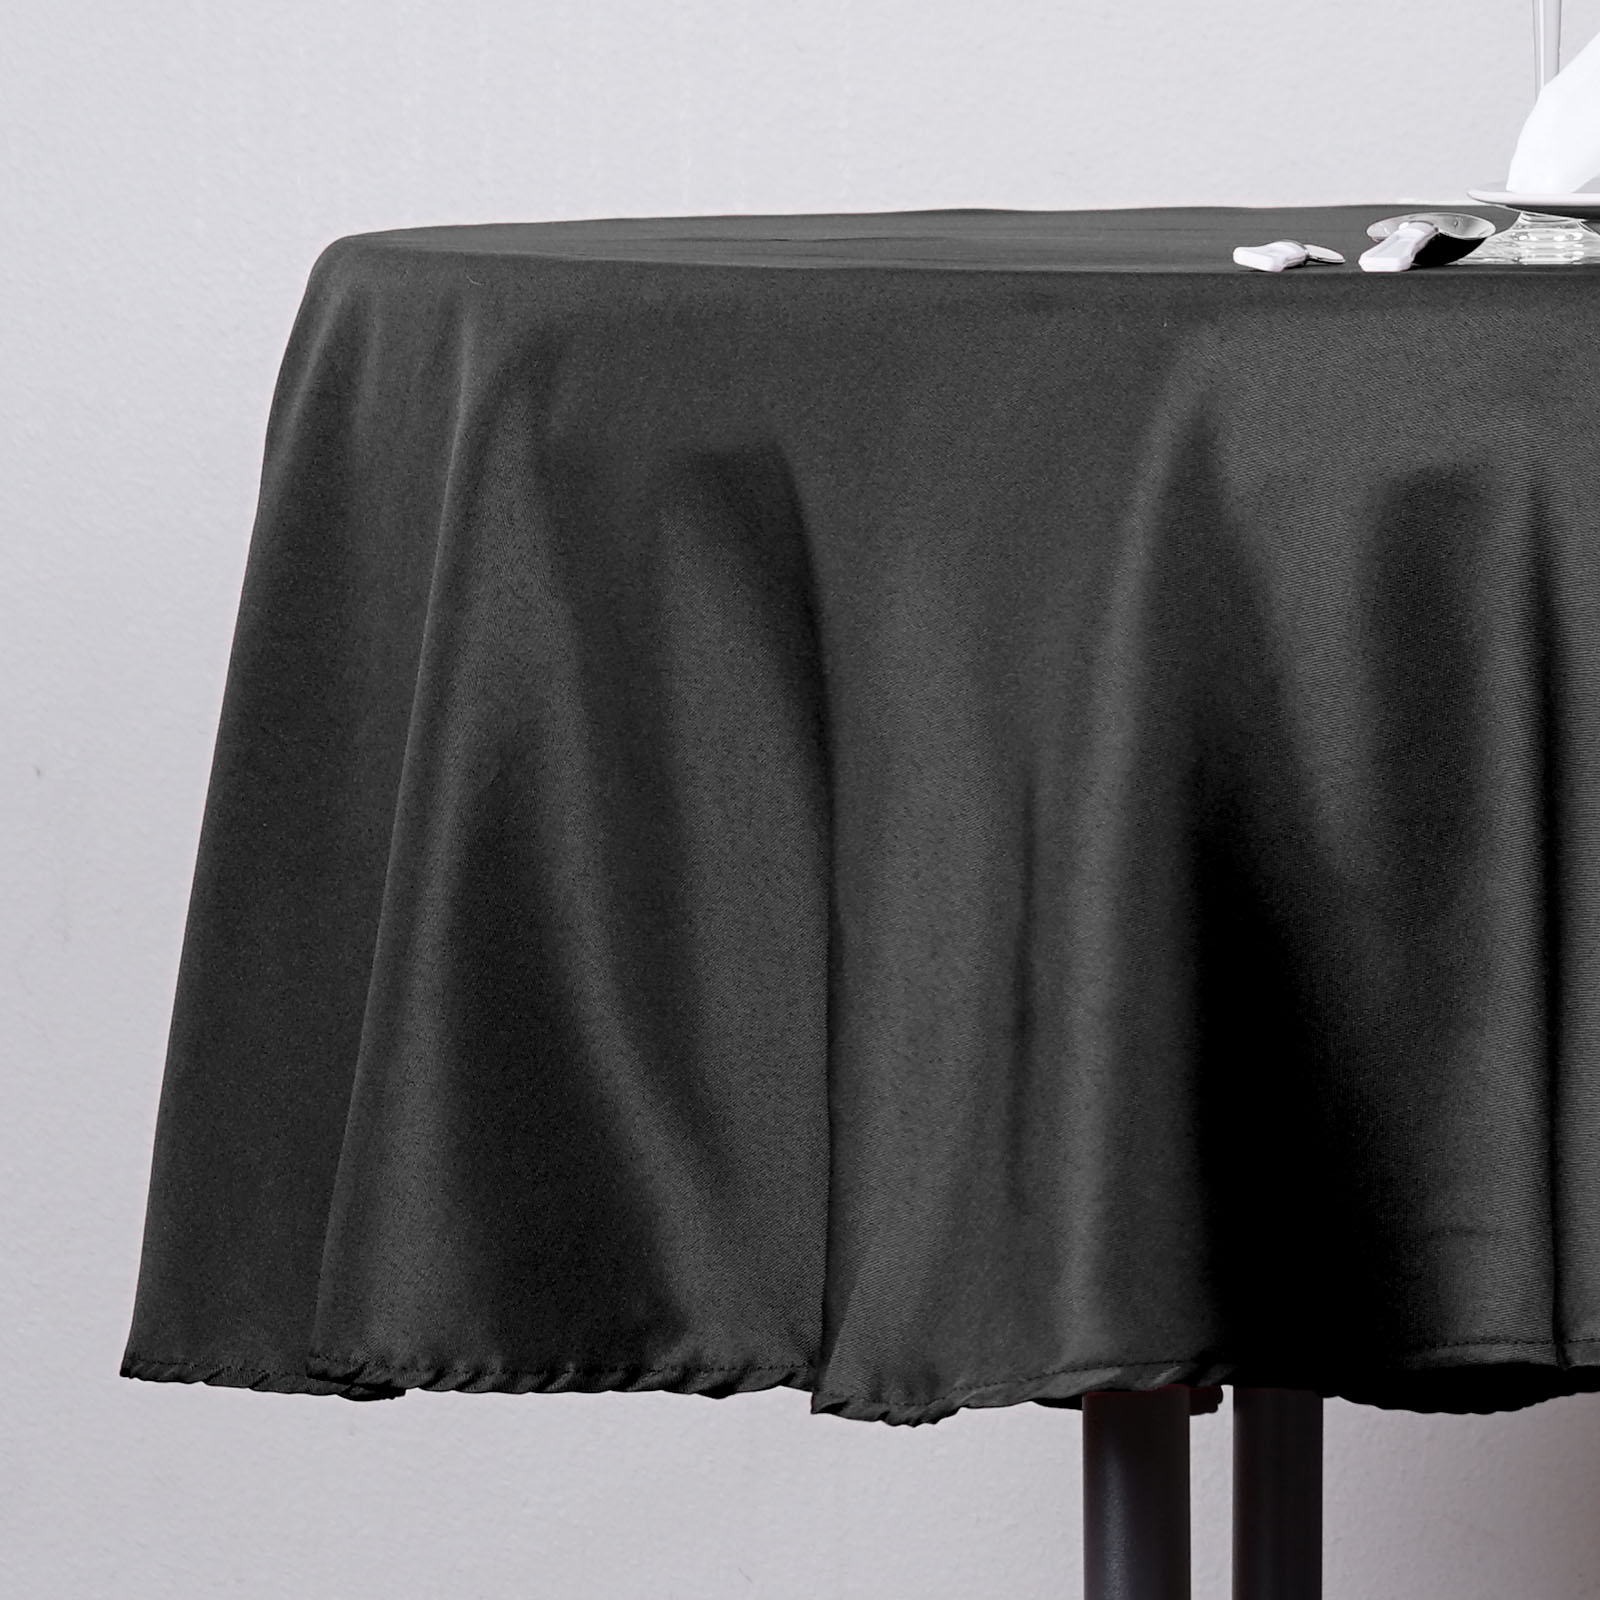 70 round polyester tablecloths for wedding buy catering table 70 034 round polyester tablecloths for wedding buy junglespirit Choice Image